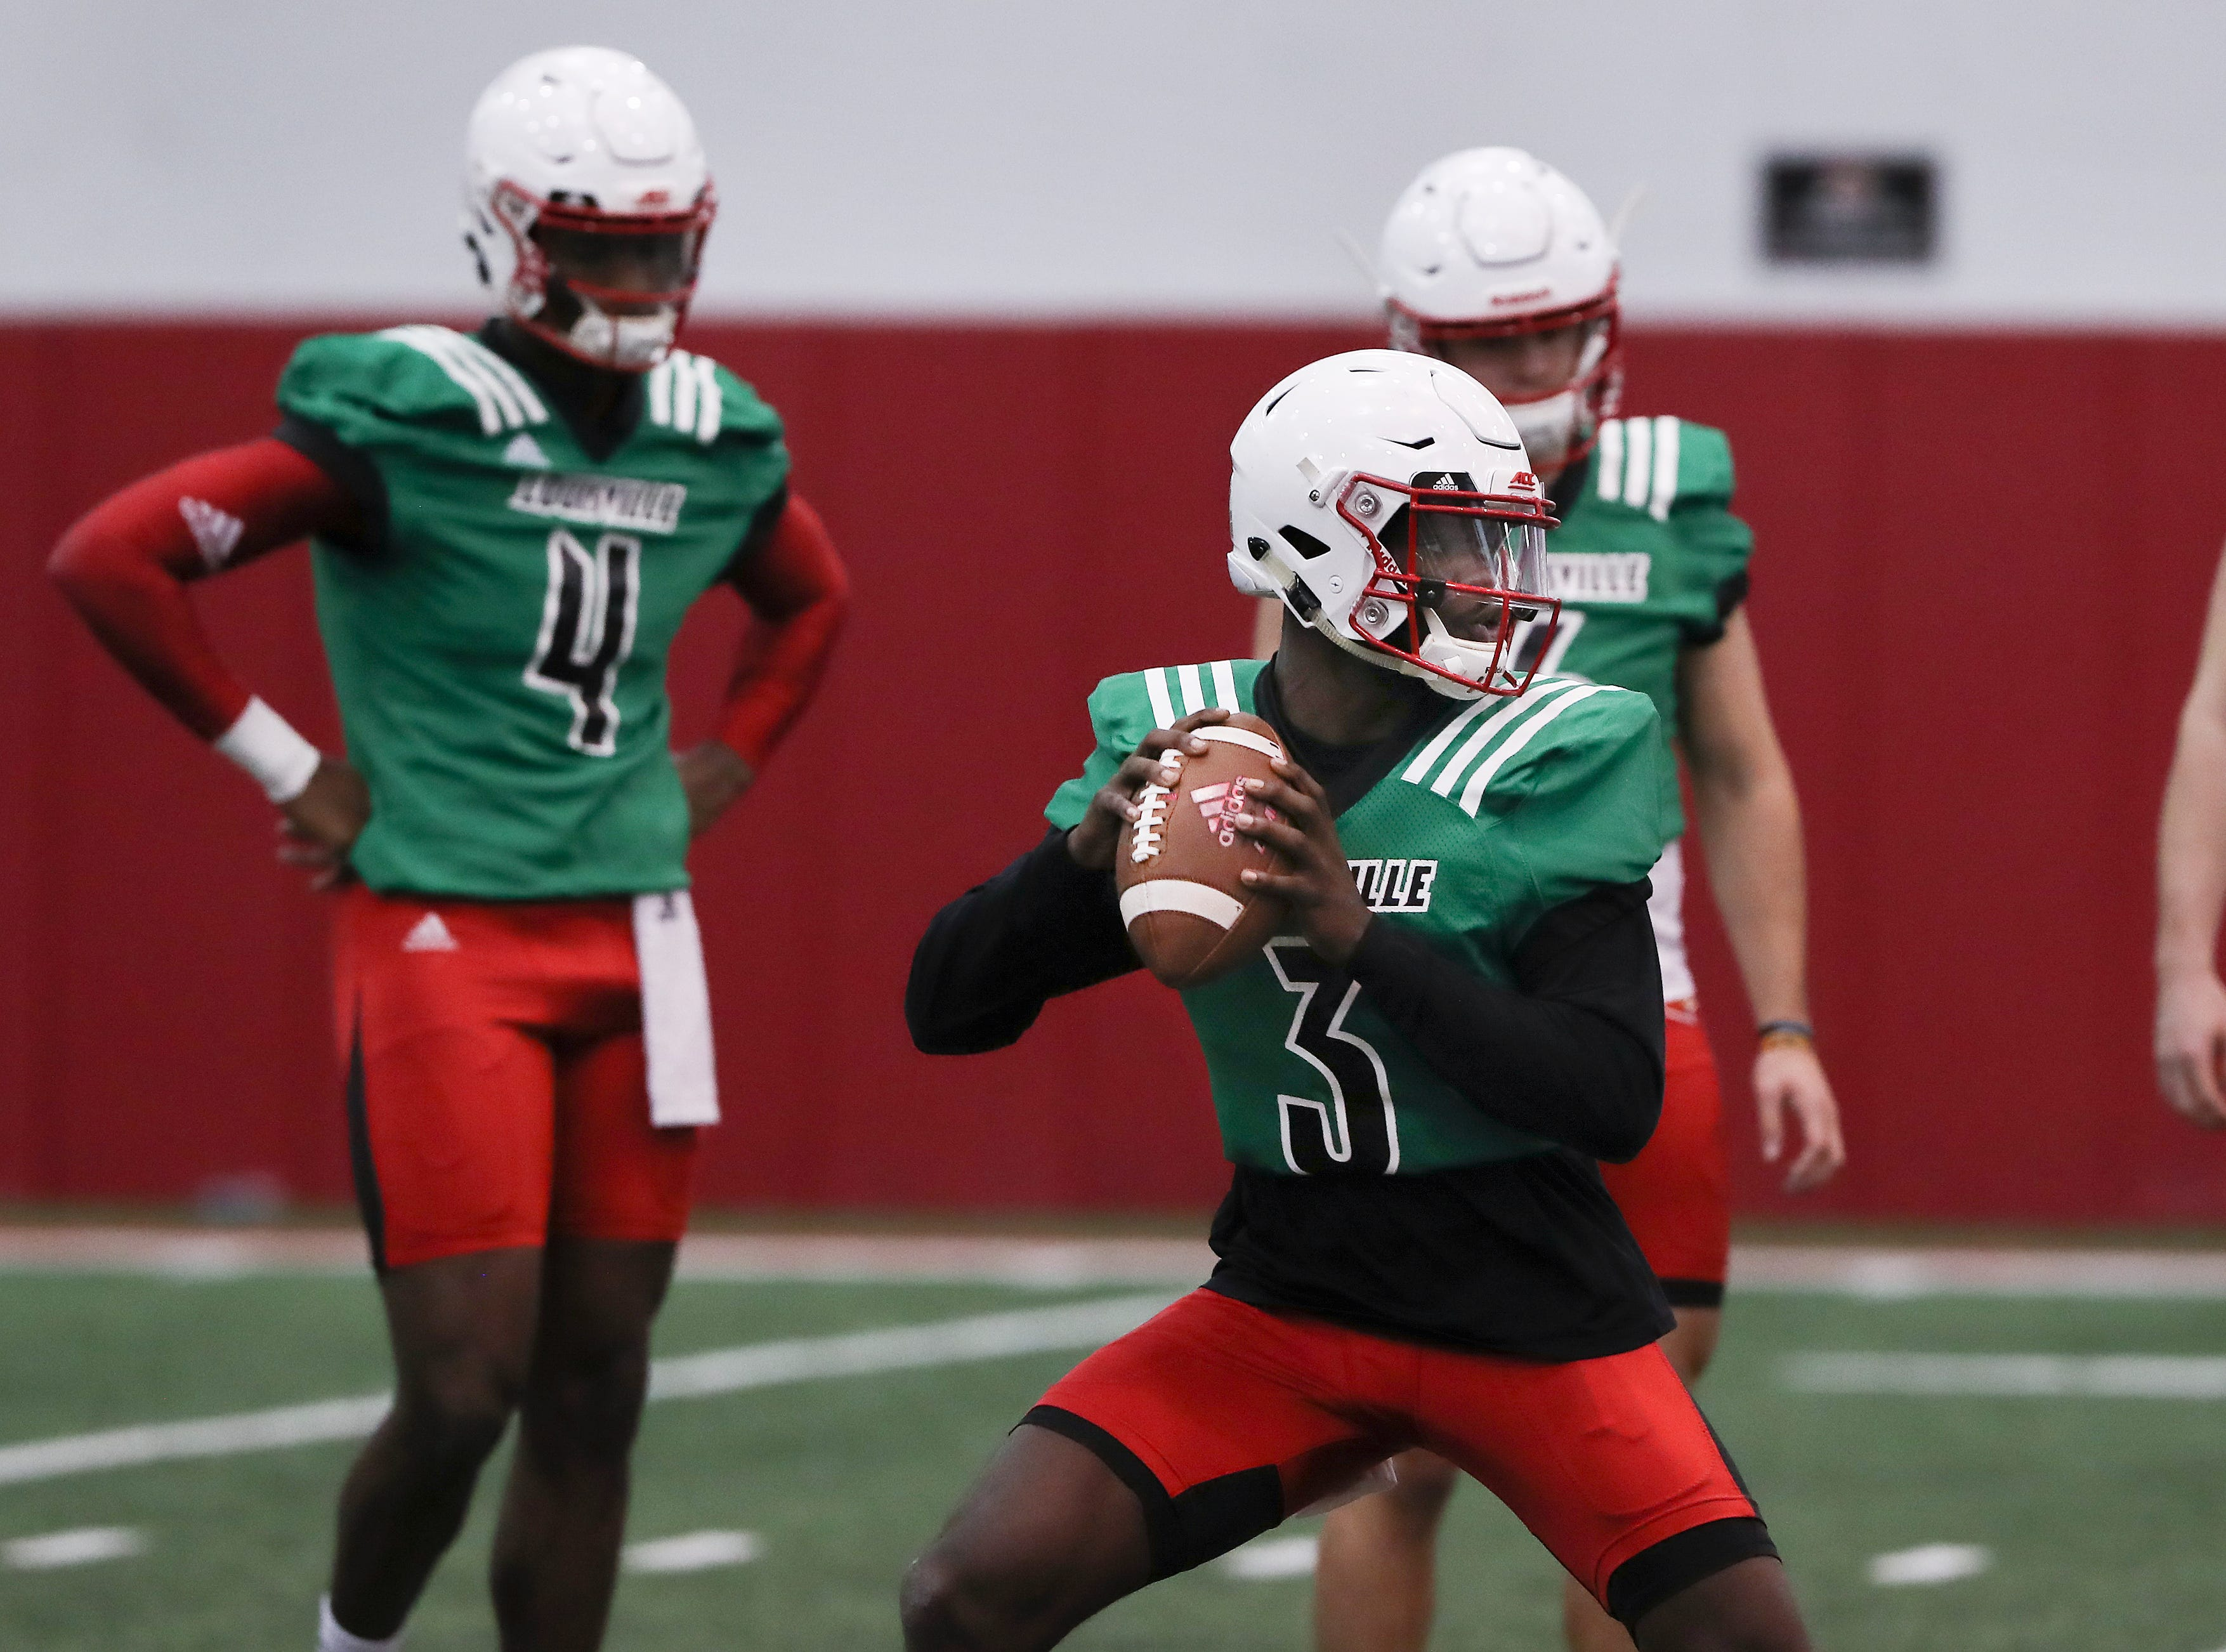 U of L QB Malik Cunningham (3) performs a pass drill during practice at the Trager Center.